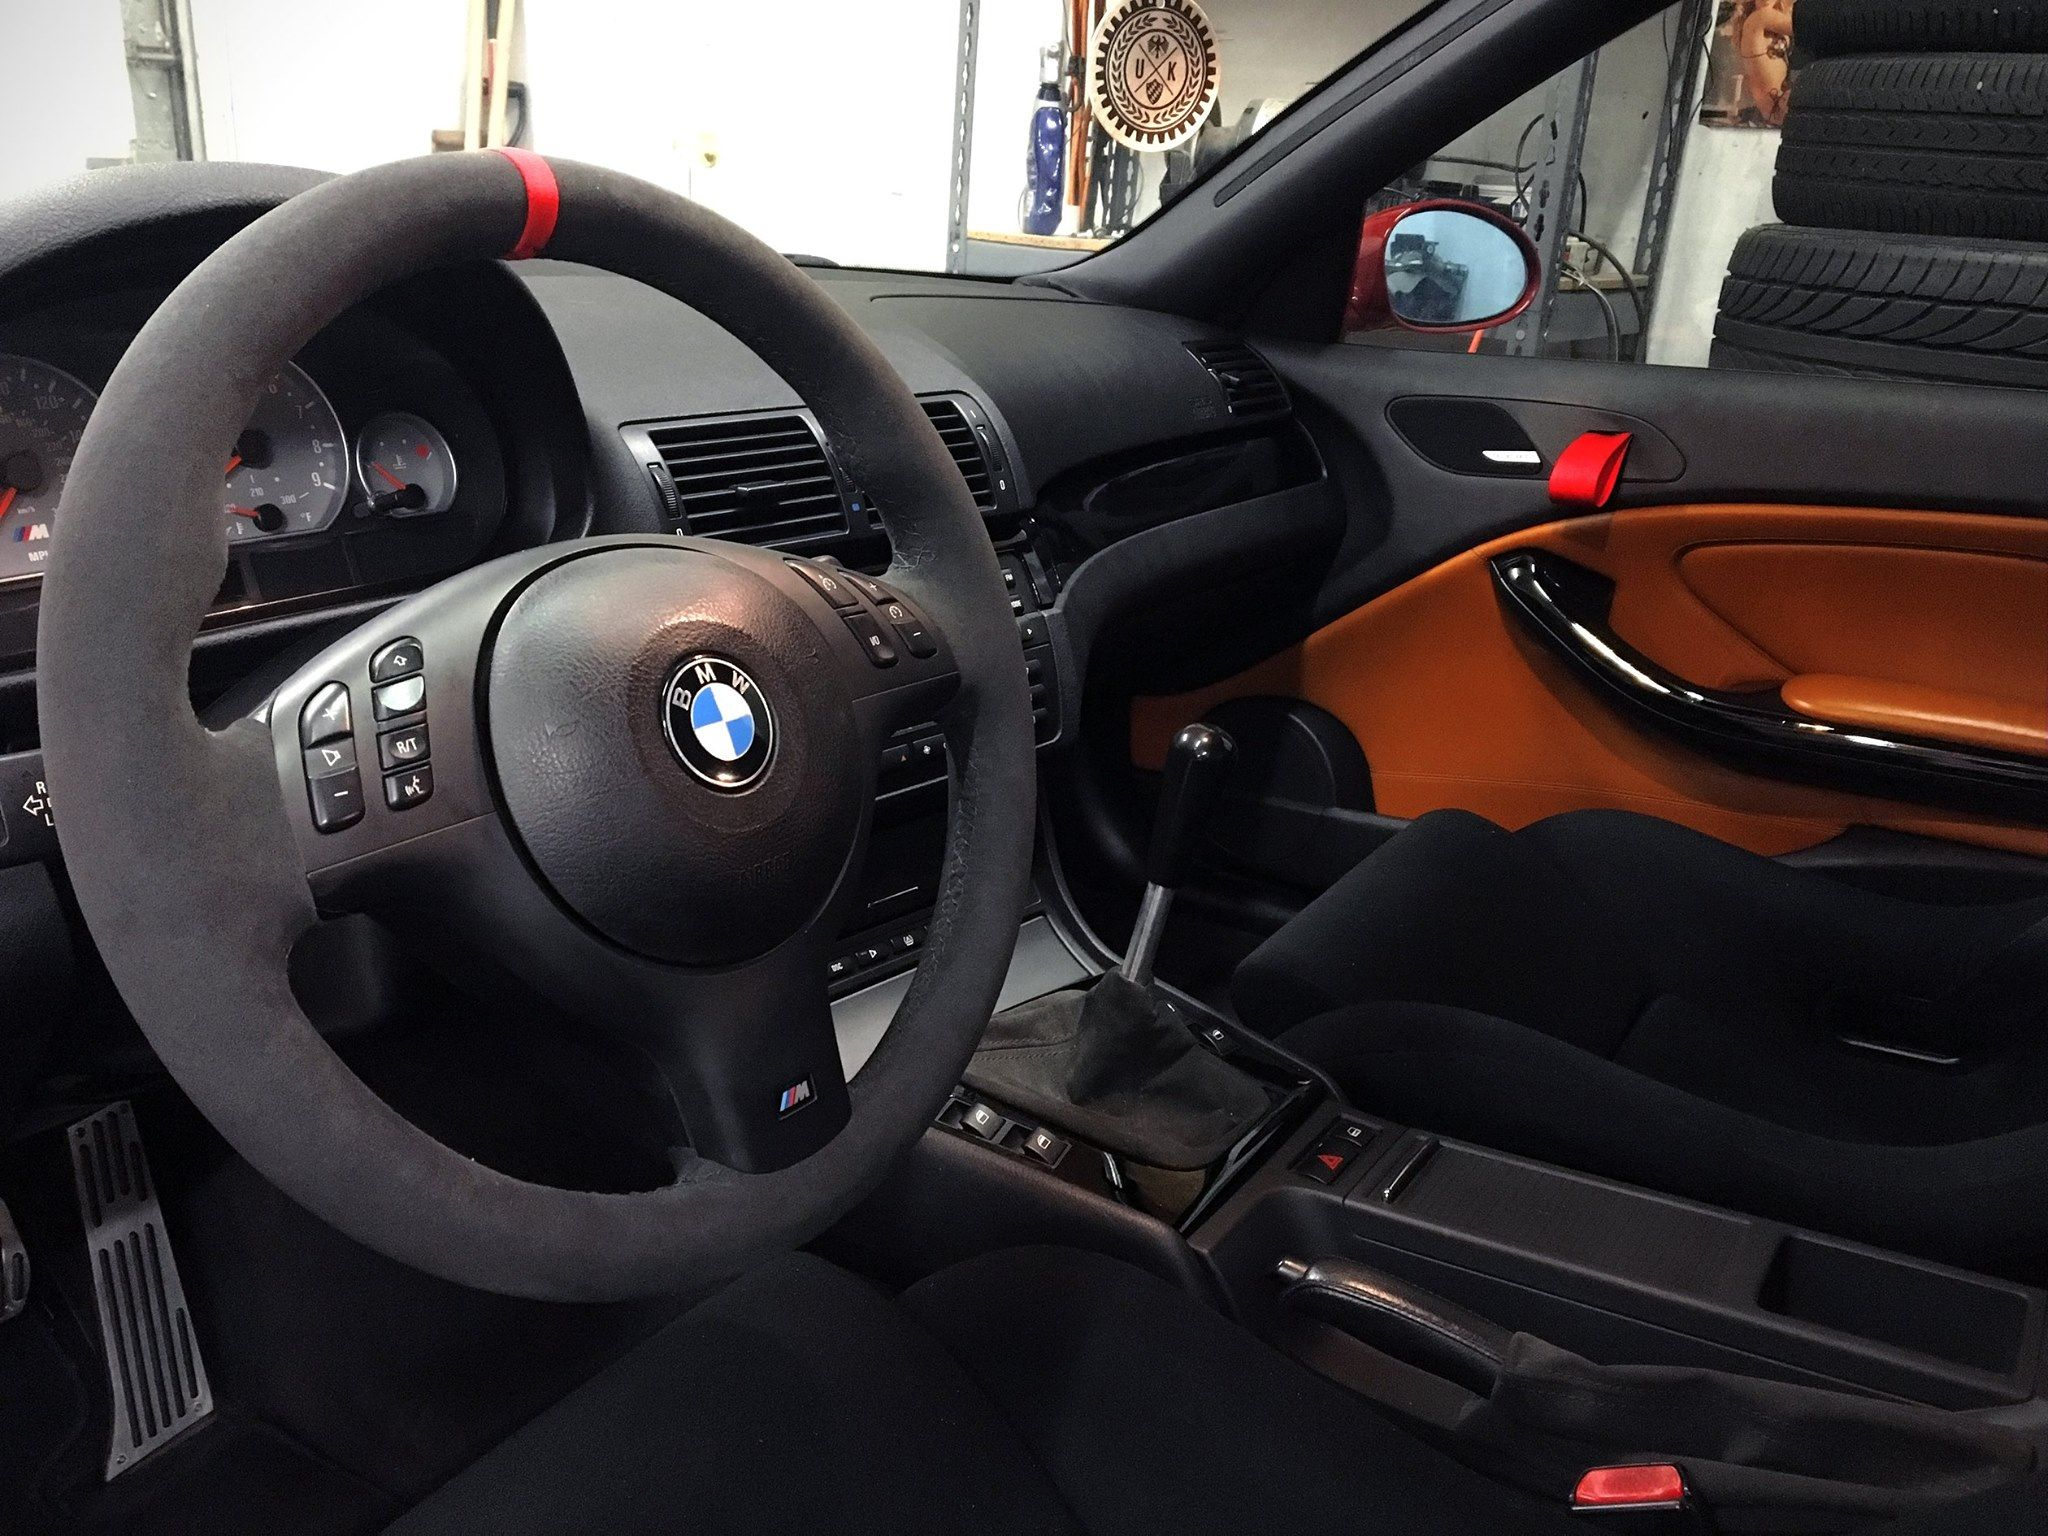 Ian Kley S E46 M3 Interior E46 M3 Bmw Performance Bmw M5 Bmw E46